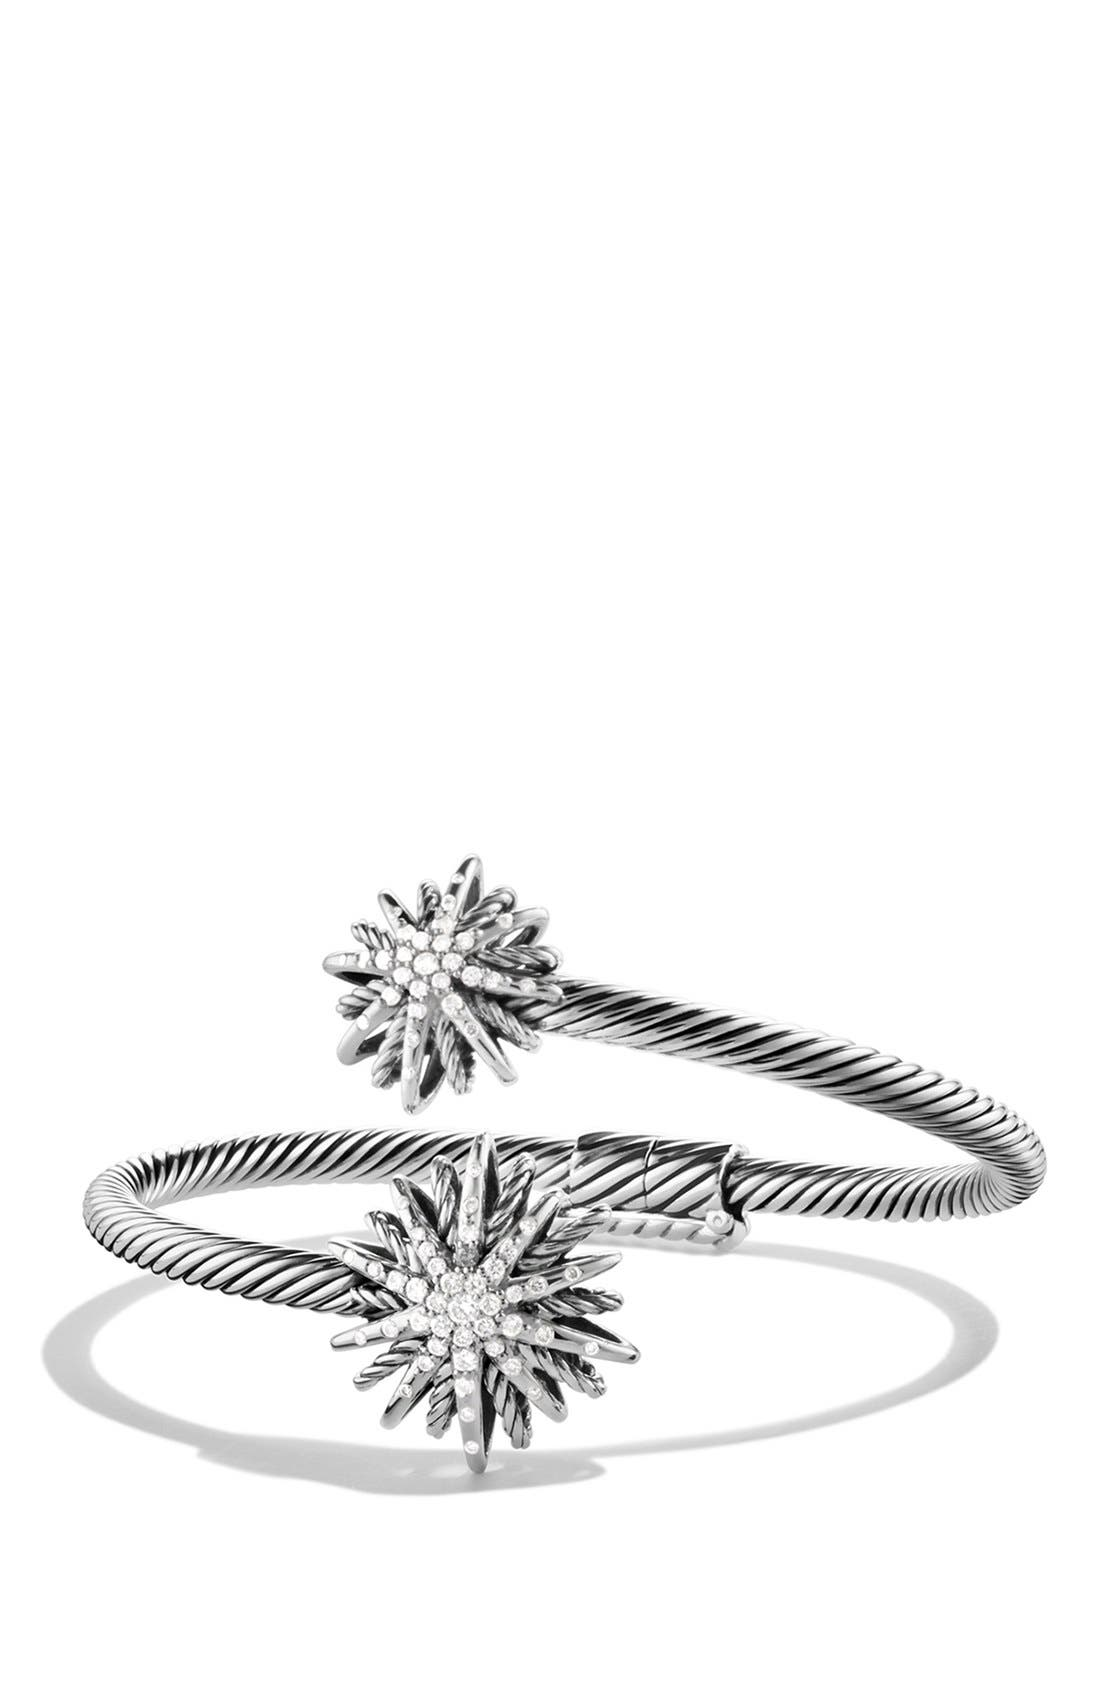 David Yurman 'Starburst' Diamond Coil Bracelet